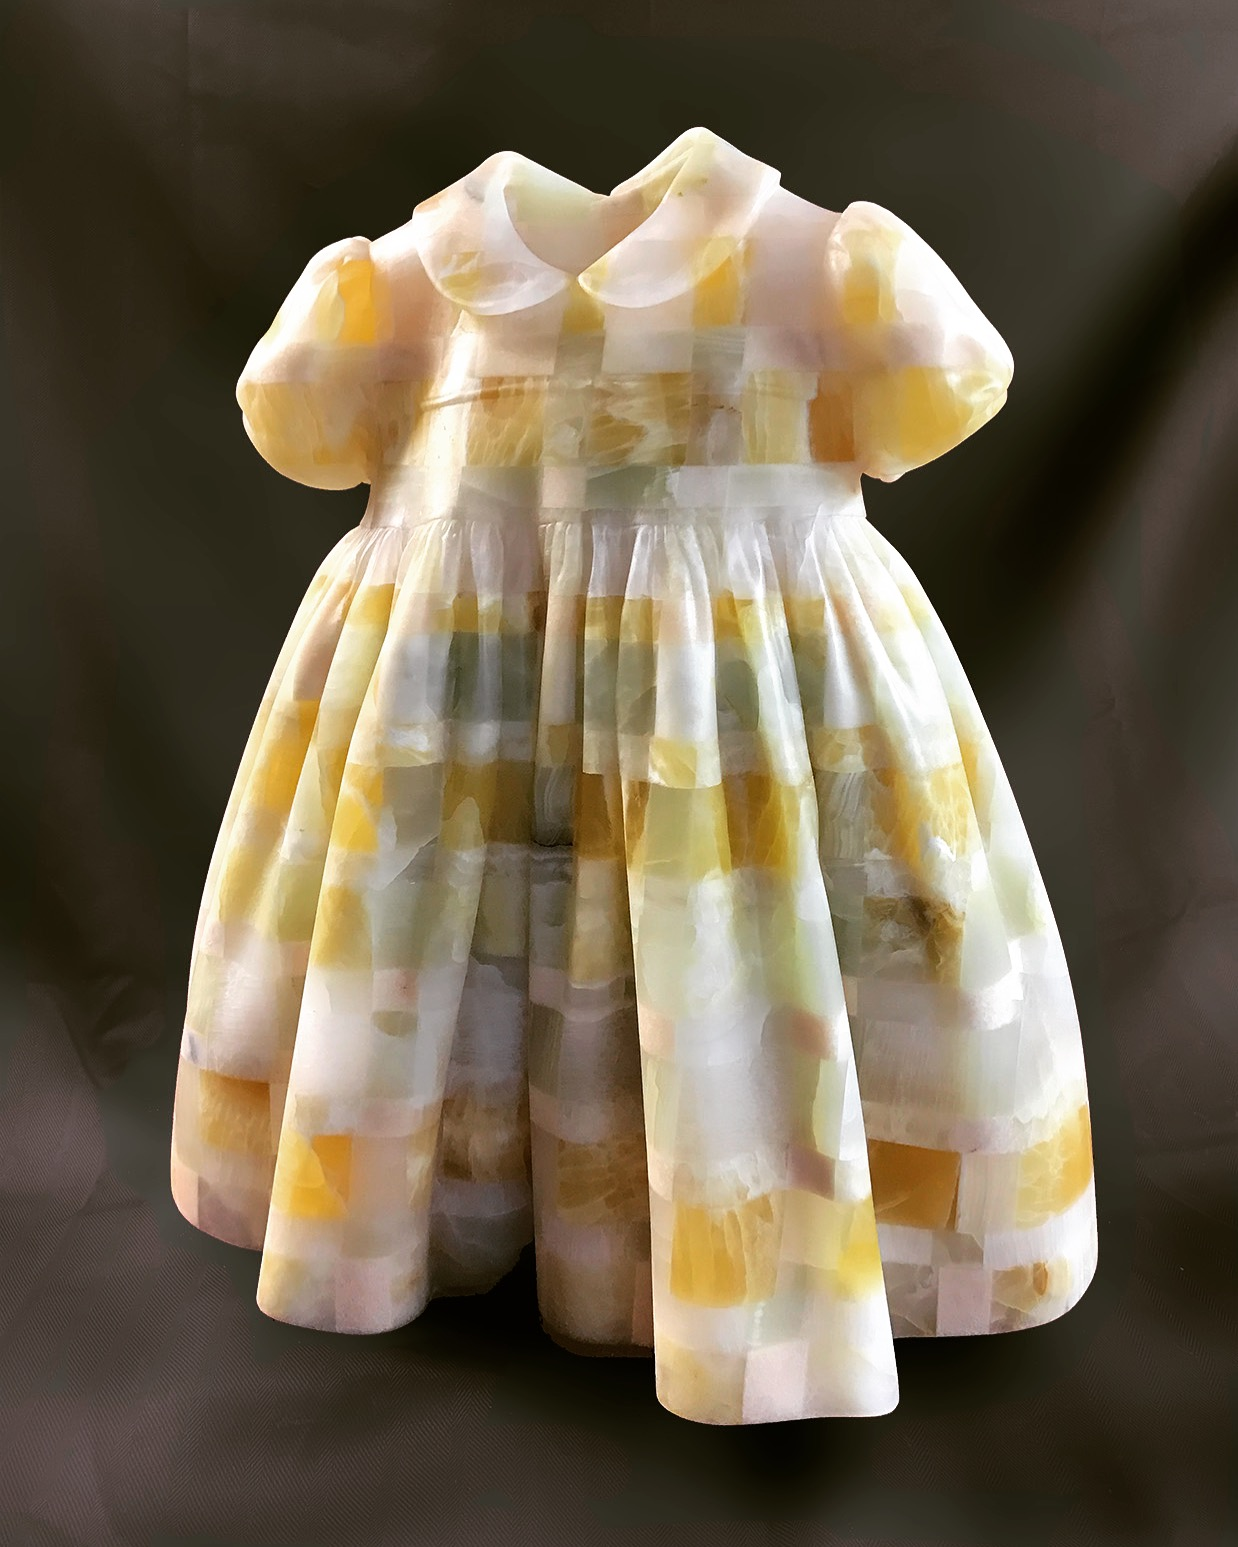 Little Girls' Dresses  In the series,  Little Girl's Dresses , light plays a critical role. By choosing translucent stones and carving delicate layers of lace and fabric, light passes through transforming a simple child's dress into a lush, sensual memory.